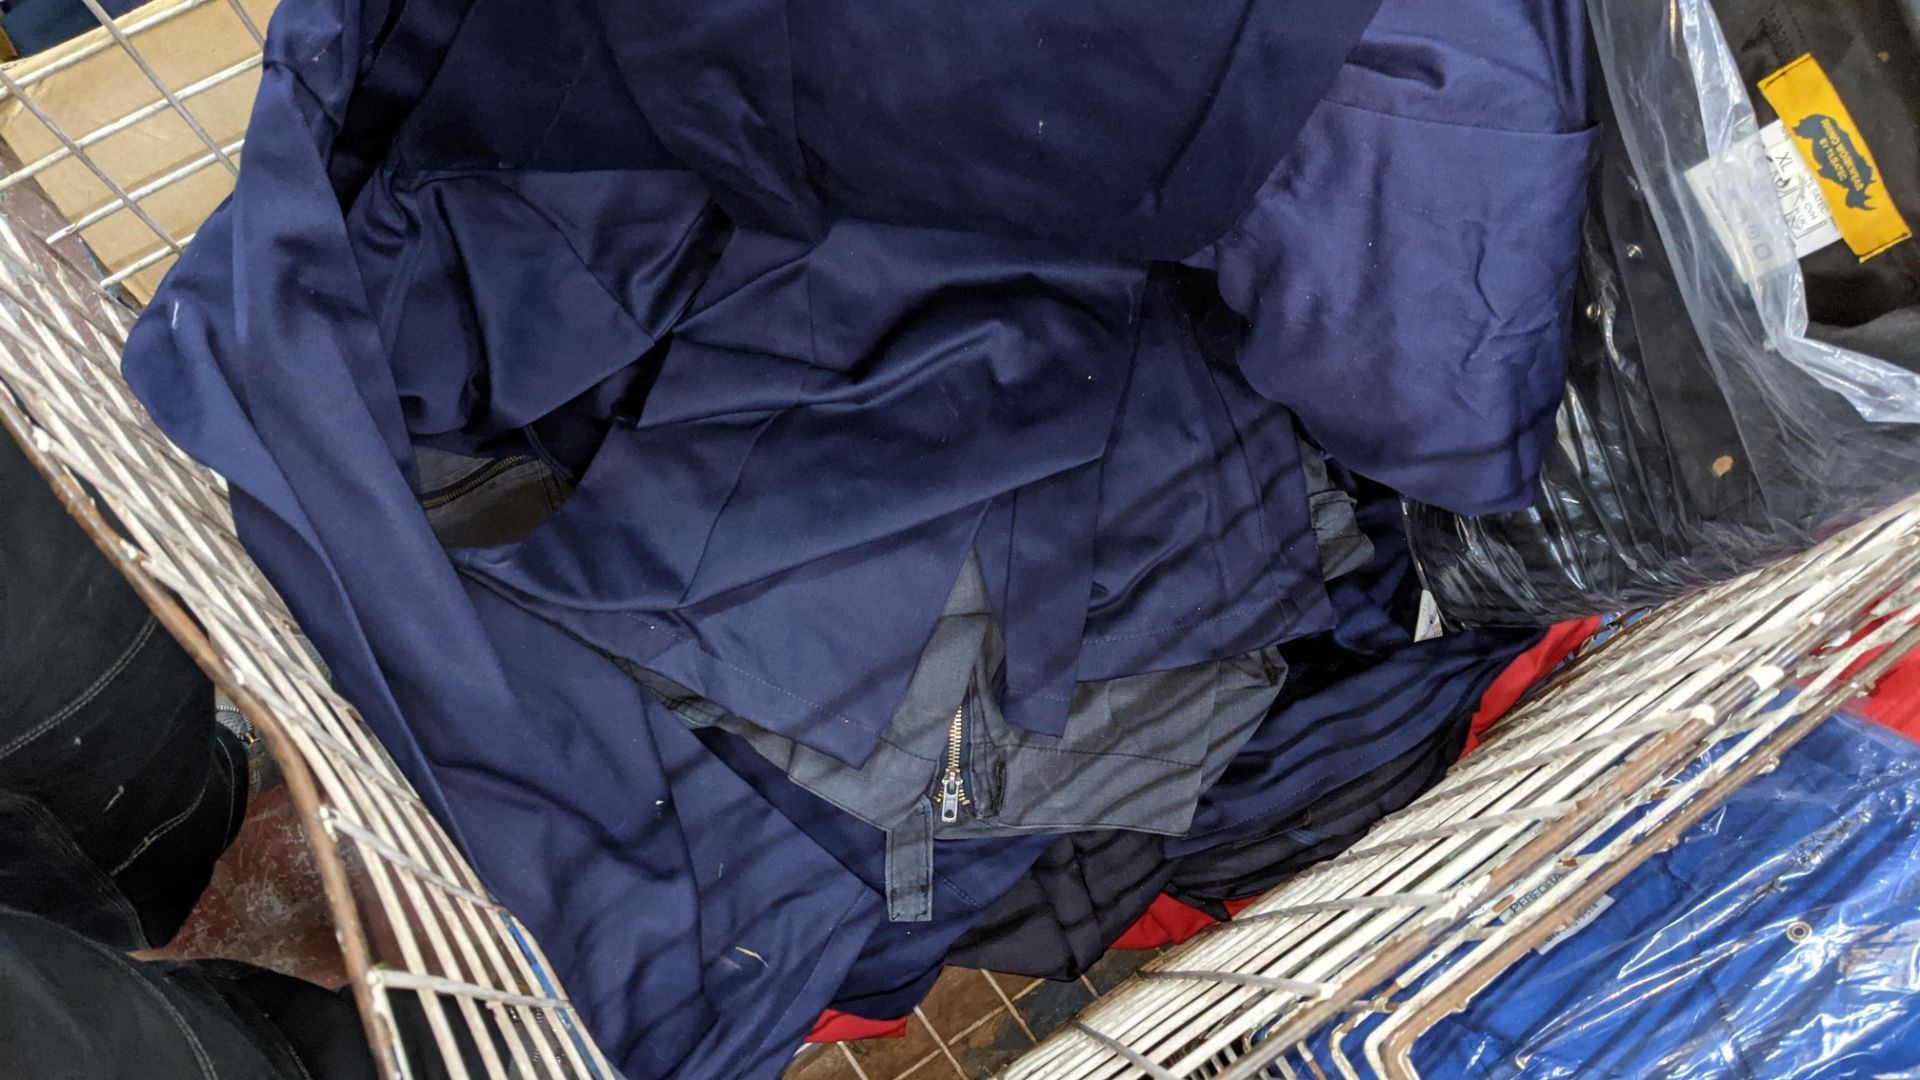 The contents of a cage of Protal flame retardant work clothing. NB cage excluded - Image 6 of 6